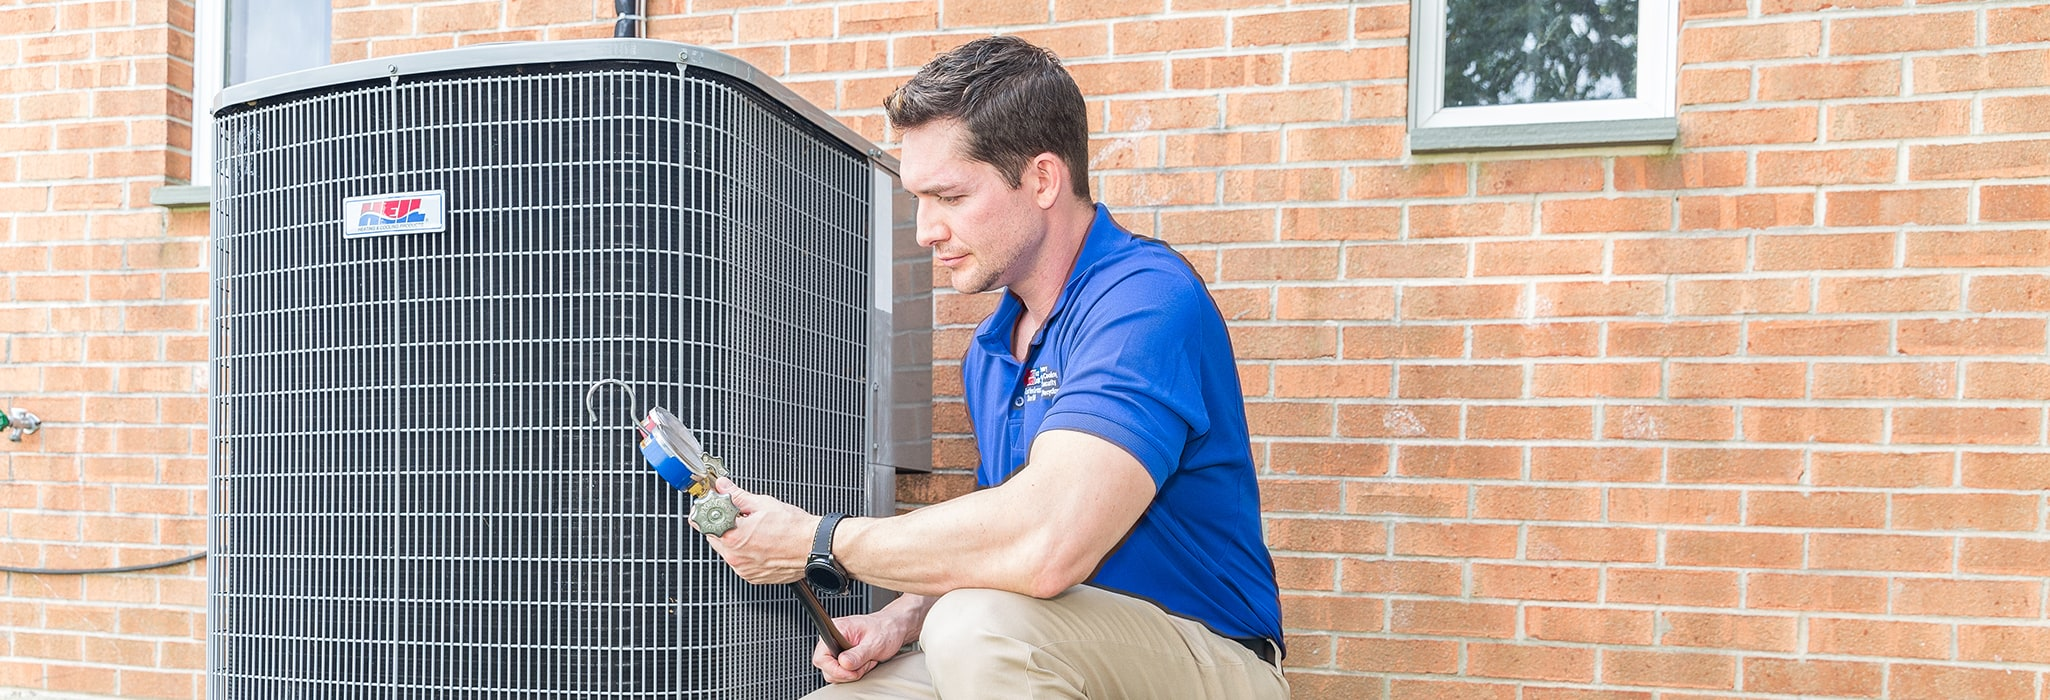 Burns & McBride team member installing a new air conditioning unit outside.